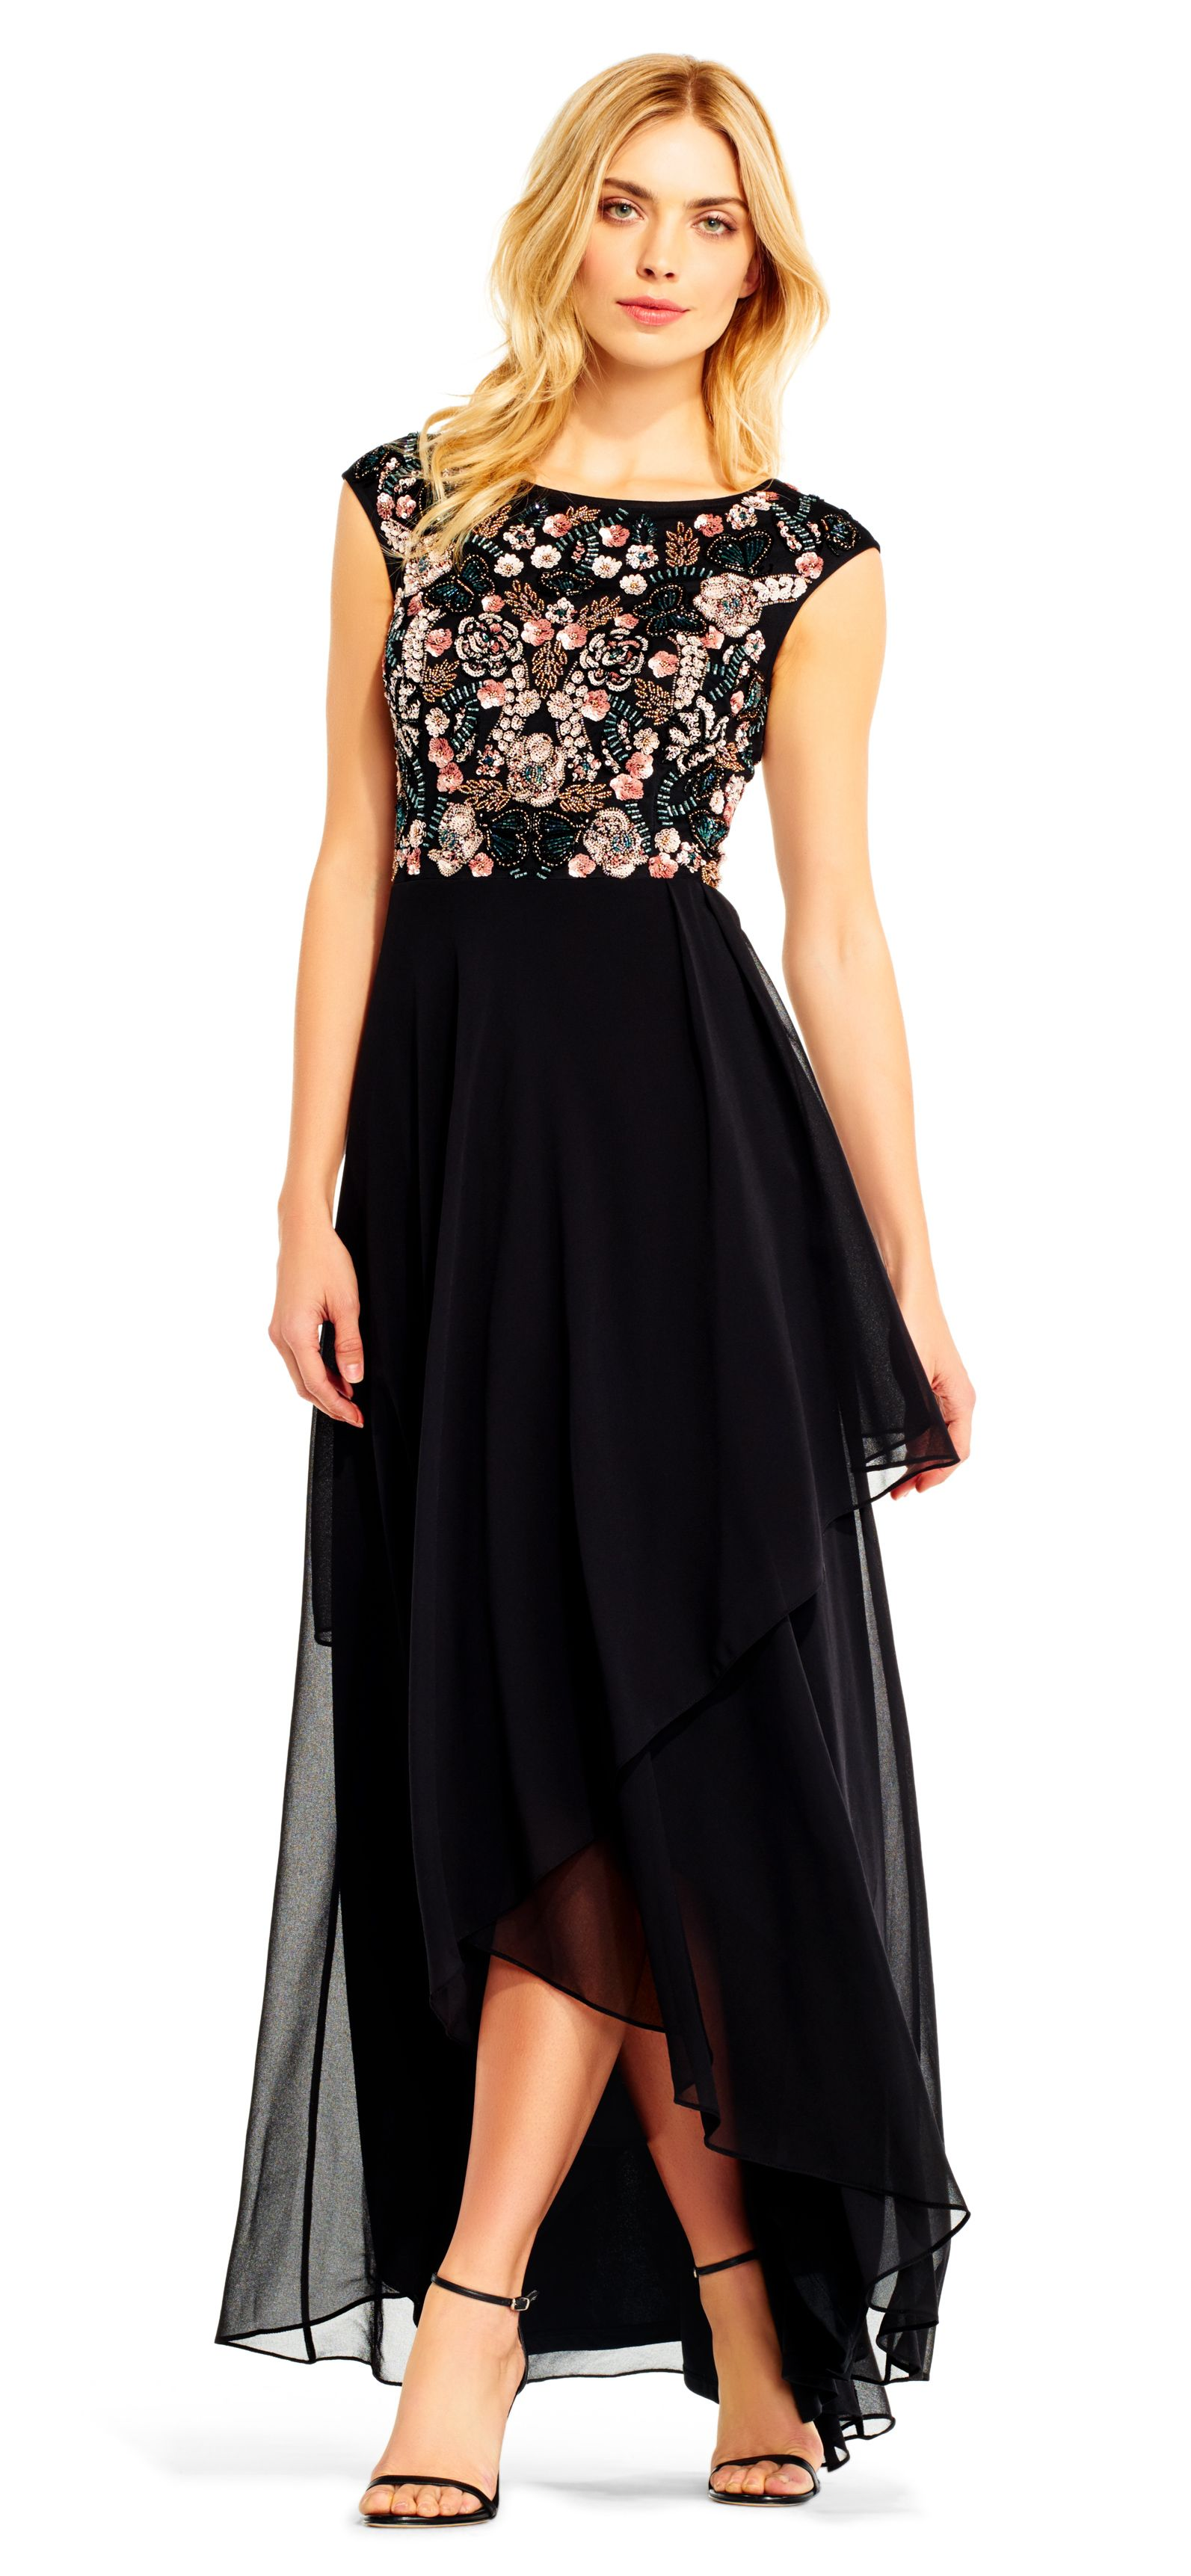 Cap Sleeve Chiffon Gown with Sequin Beaded Florals | Pinterest ...